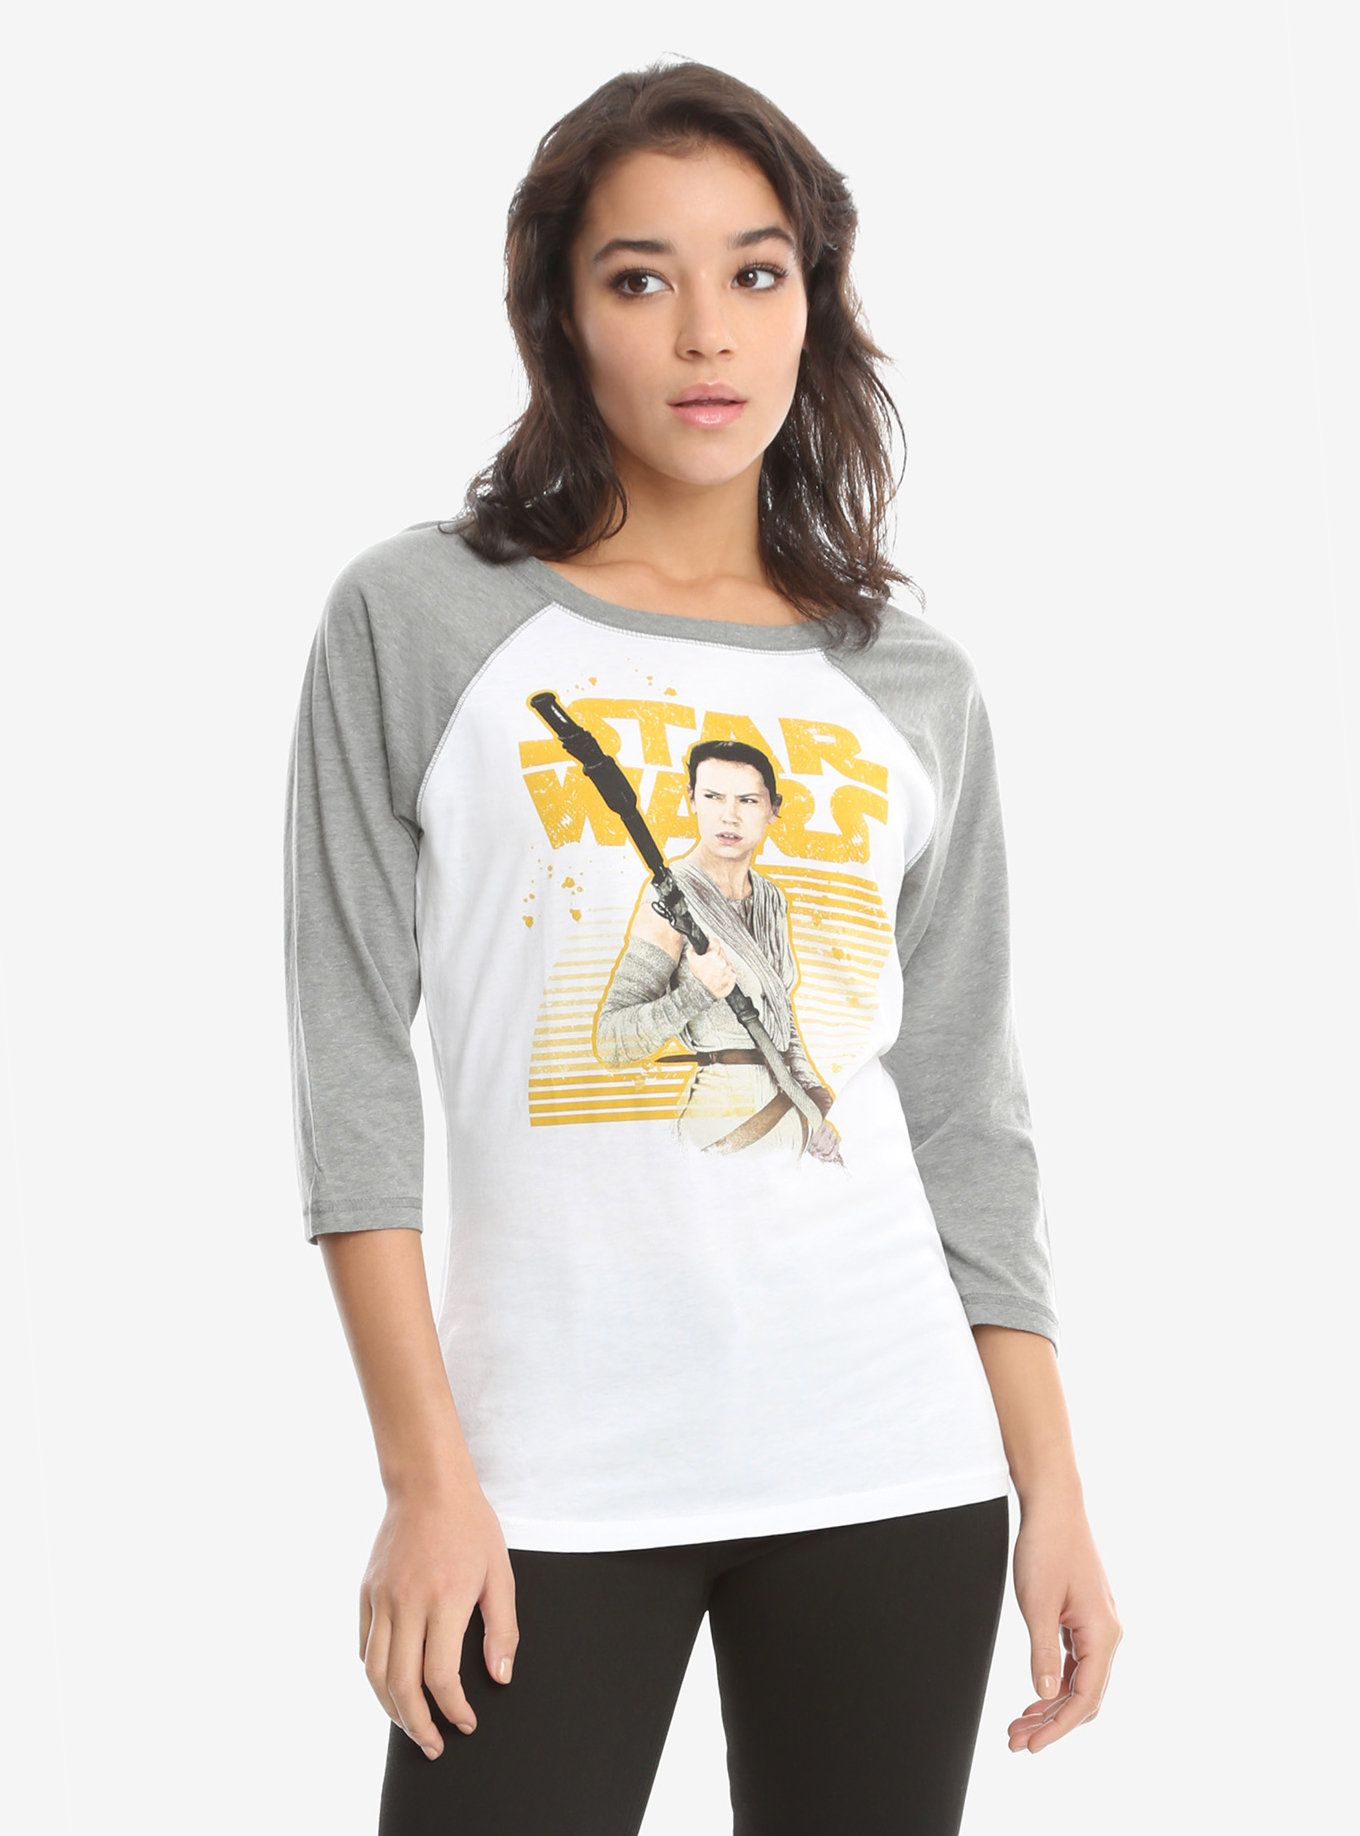 LADIES Official Licensed STAR WARS THE FORCE AWAKENS REY T-Shirt